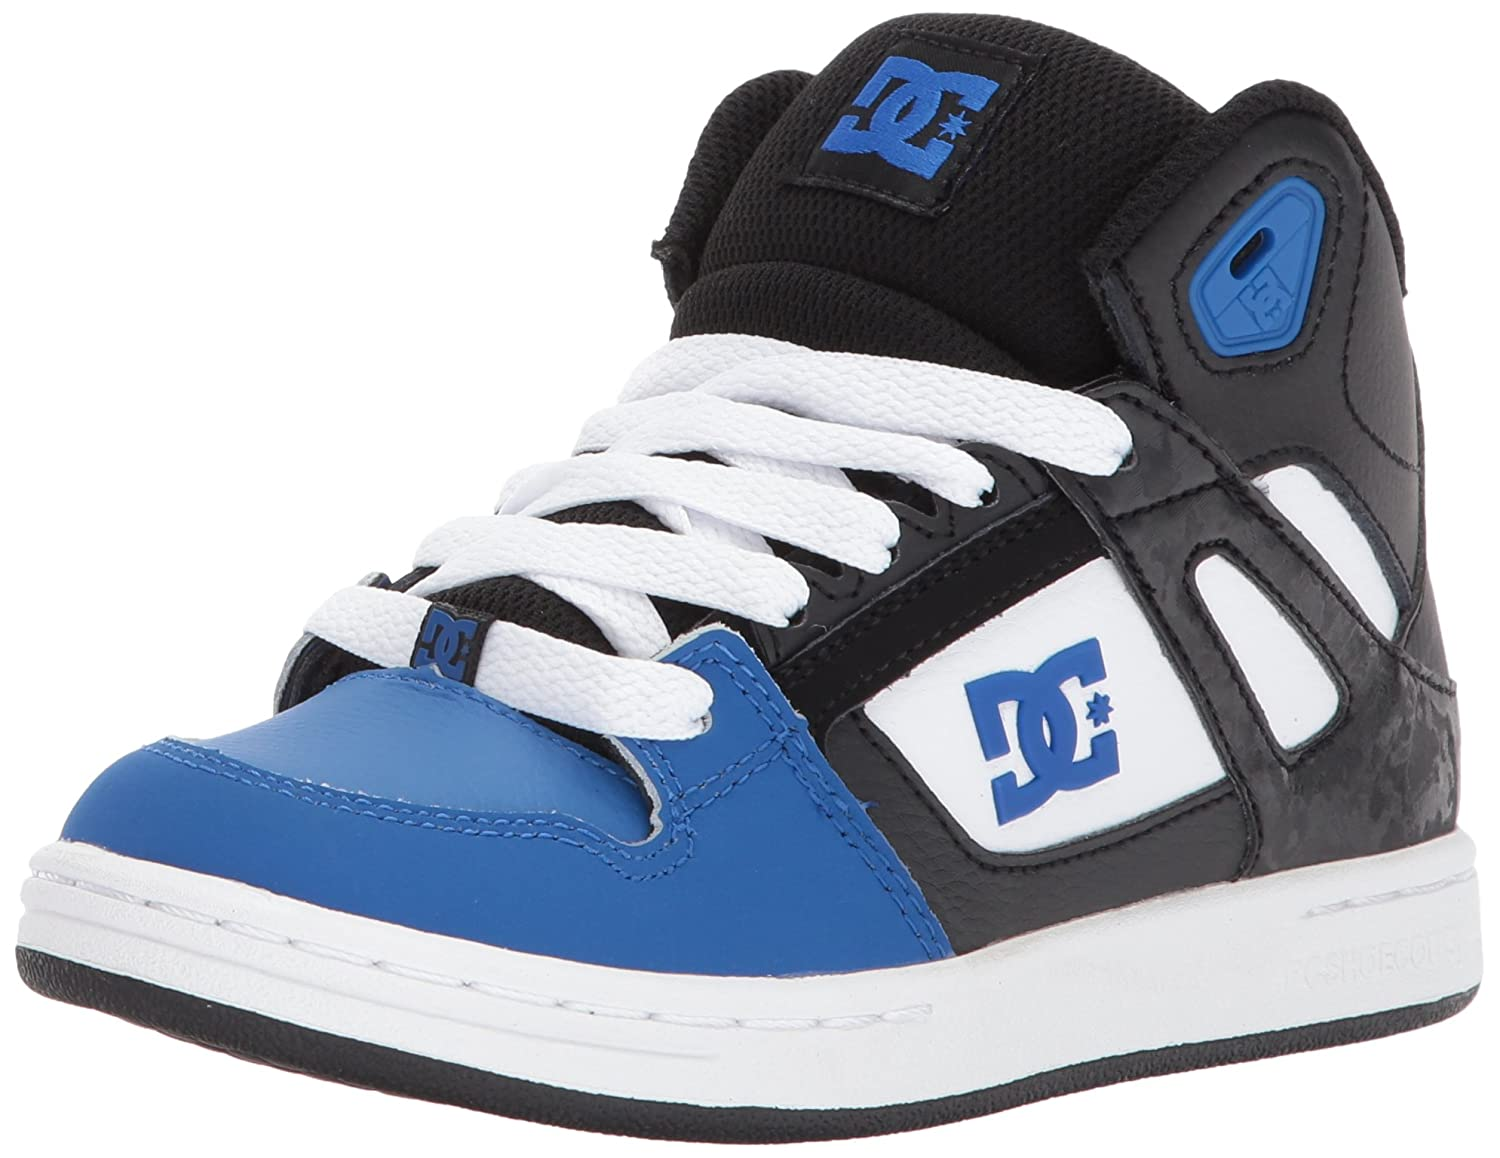 Gutter Dc Shoes h5Z3vsB